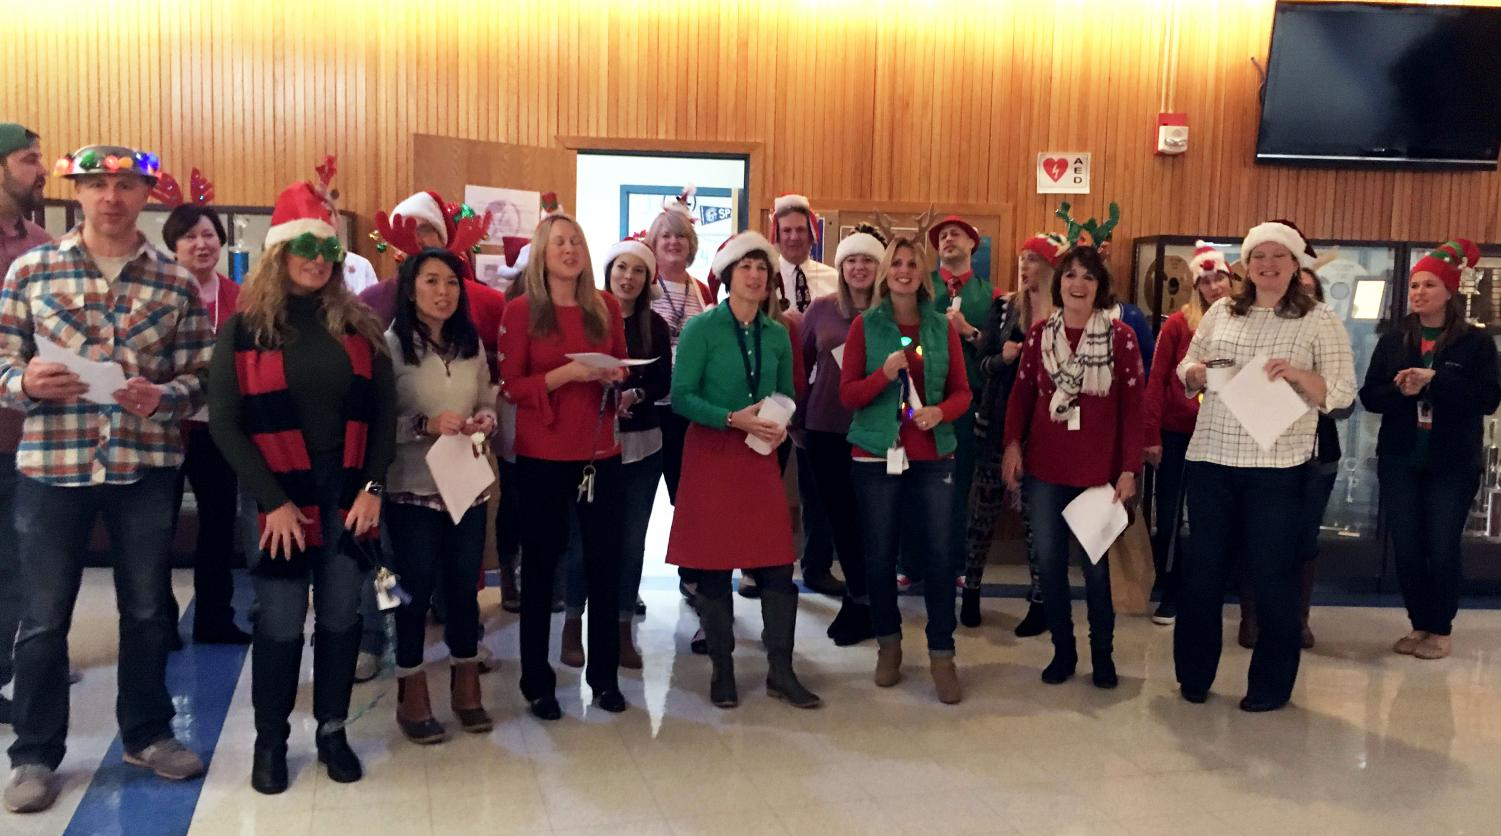 Teachers participated in an impromptu faculty choir, the Spartairs, during the holidays.